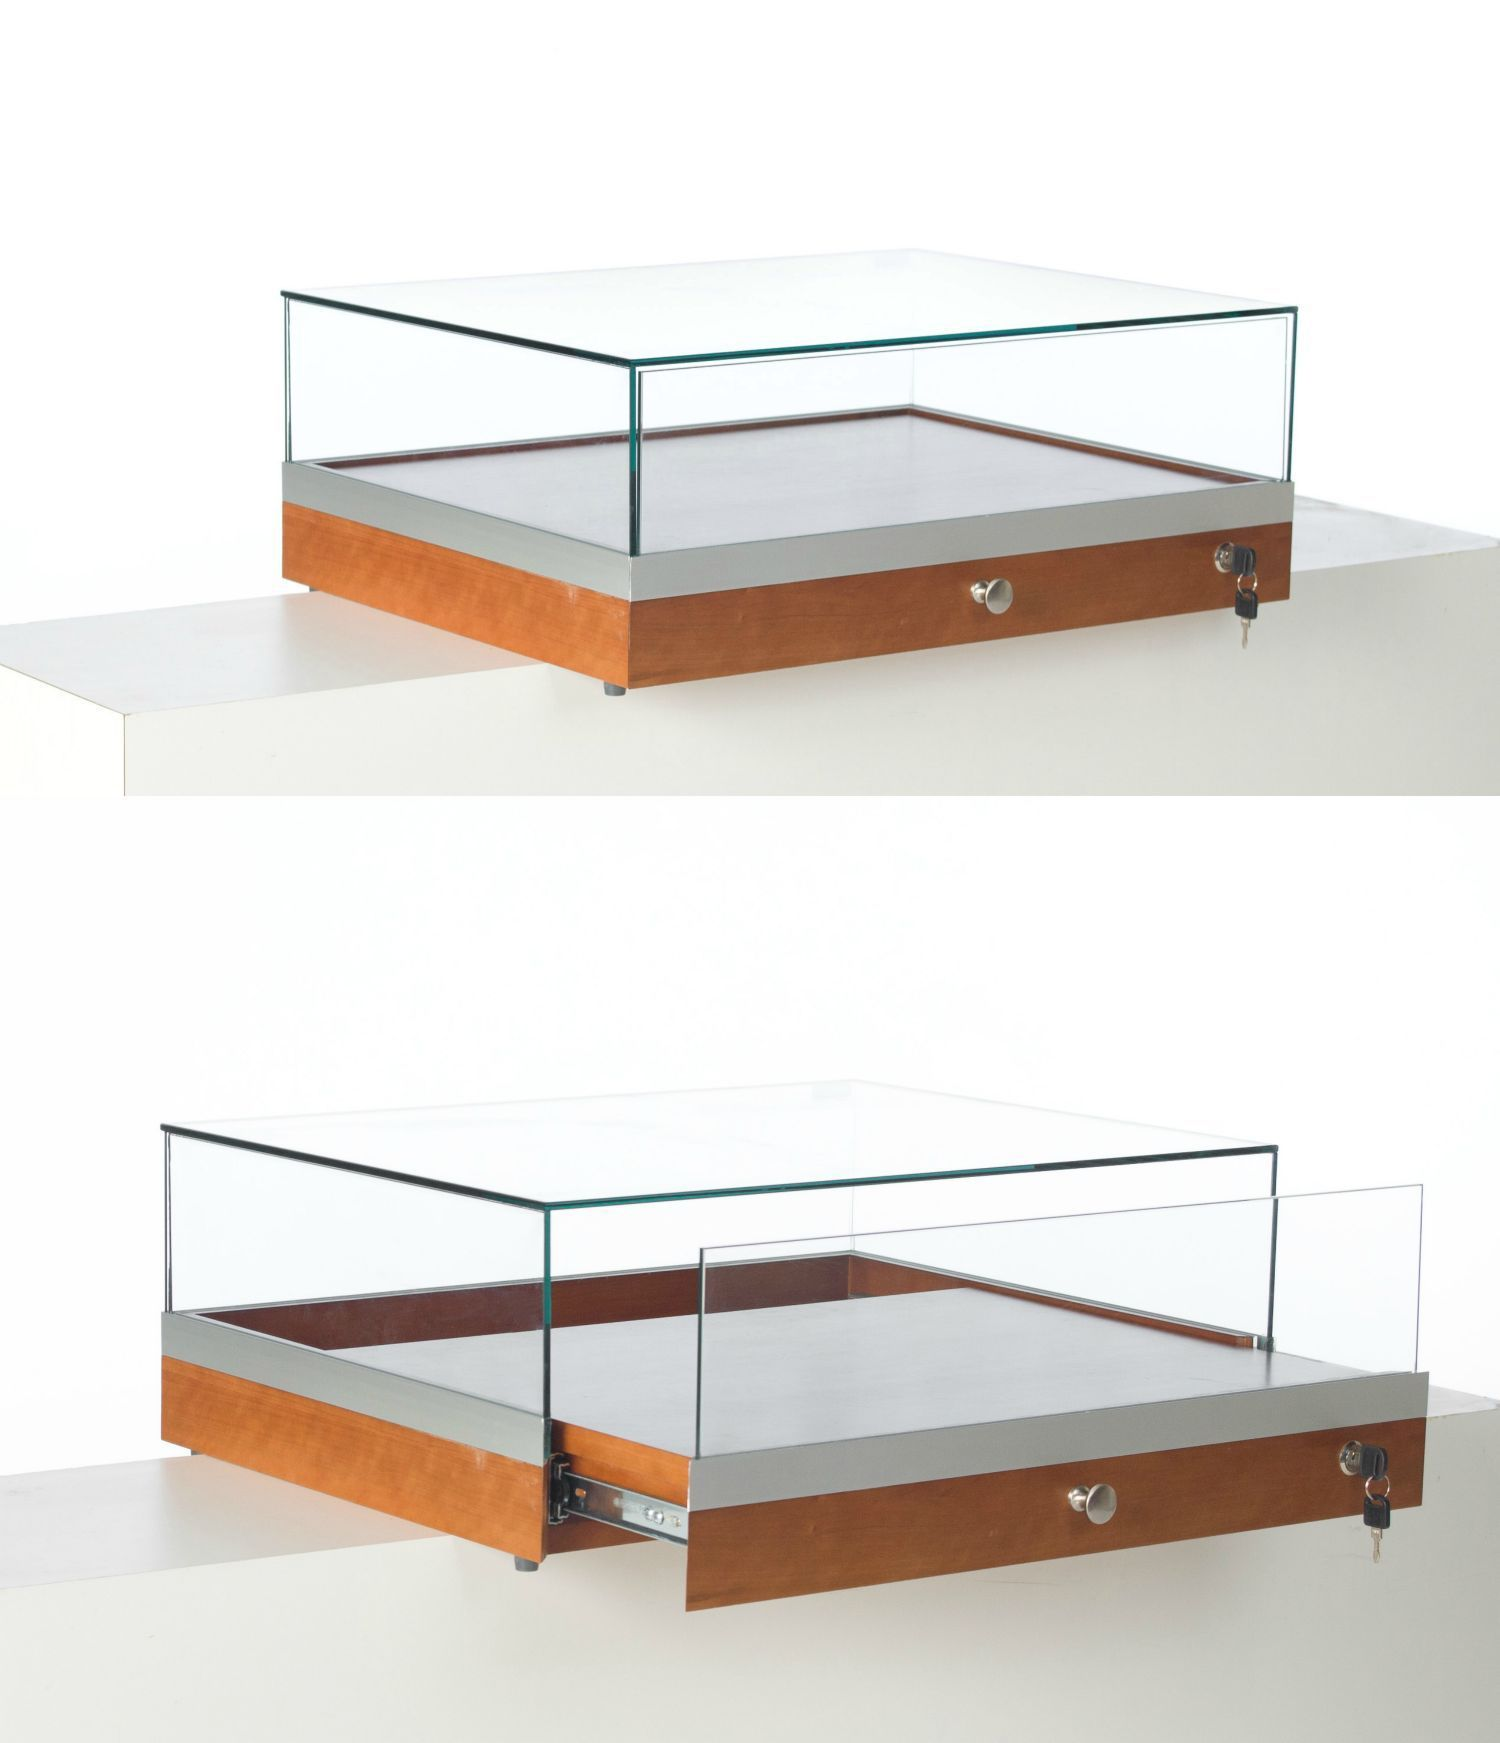 23+ Countertop jewelry display cases for sale information